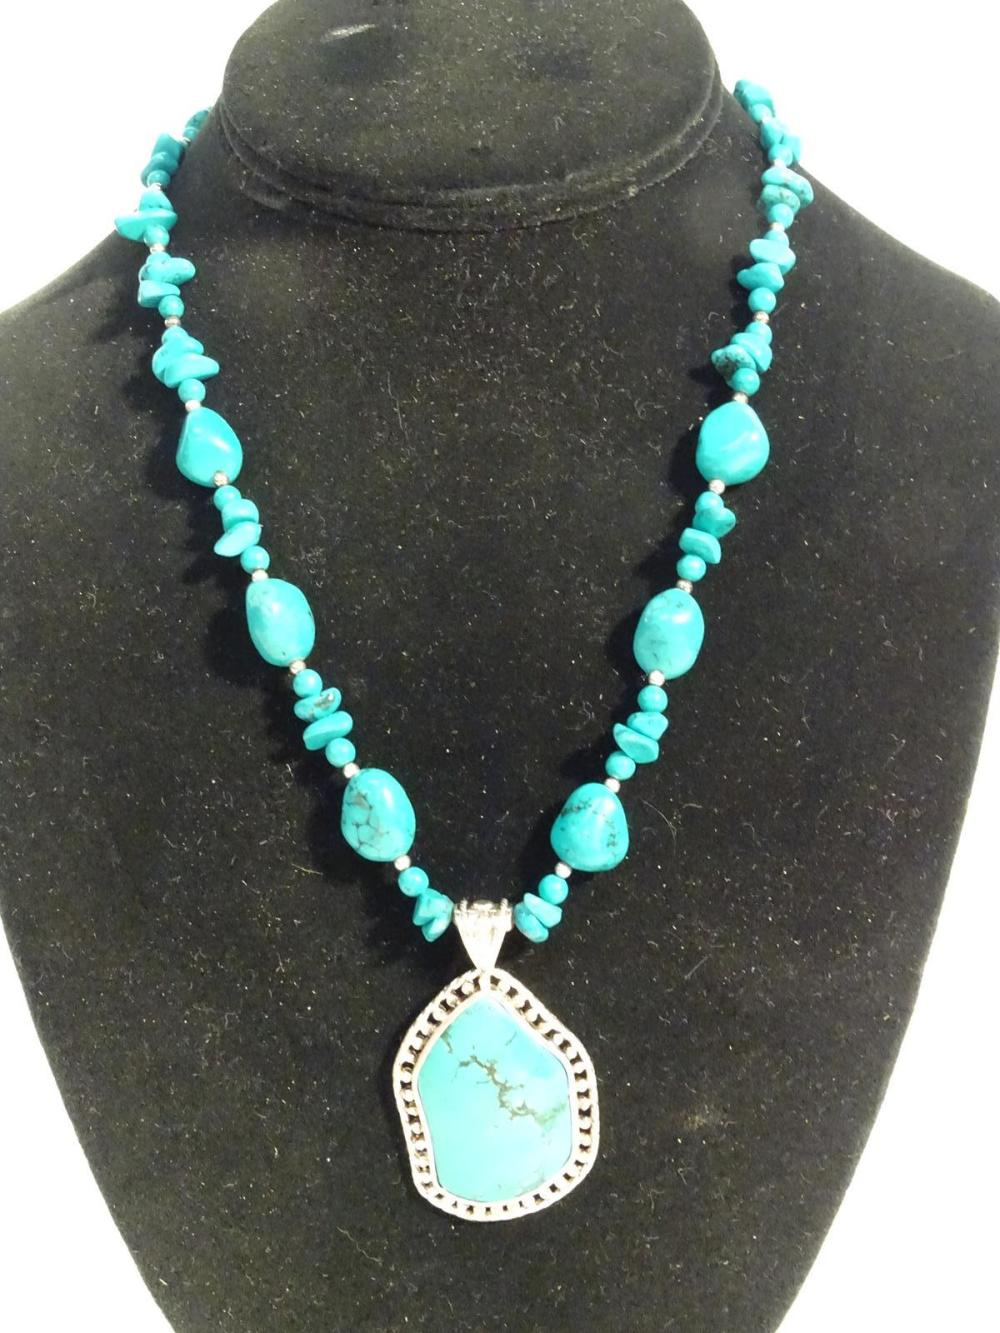 TURQUOISE/STERLING SILVER NECKLACE